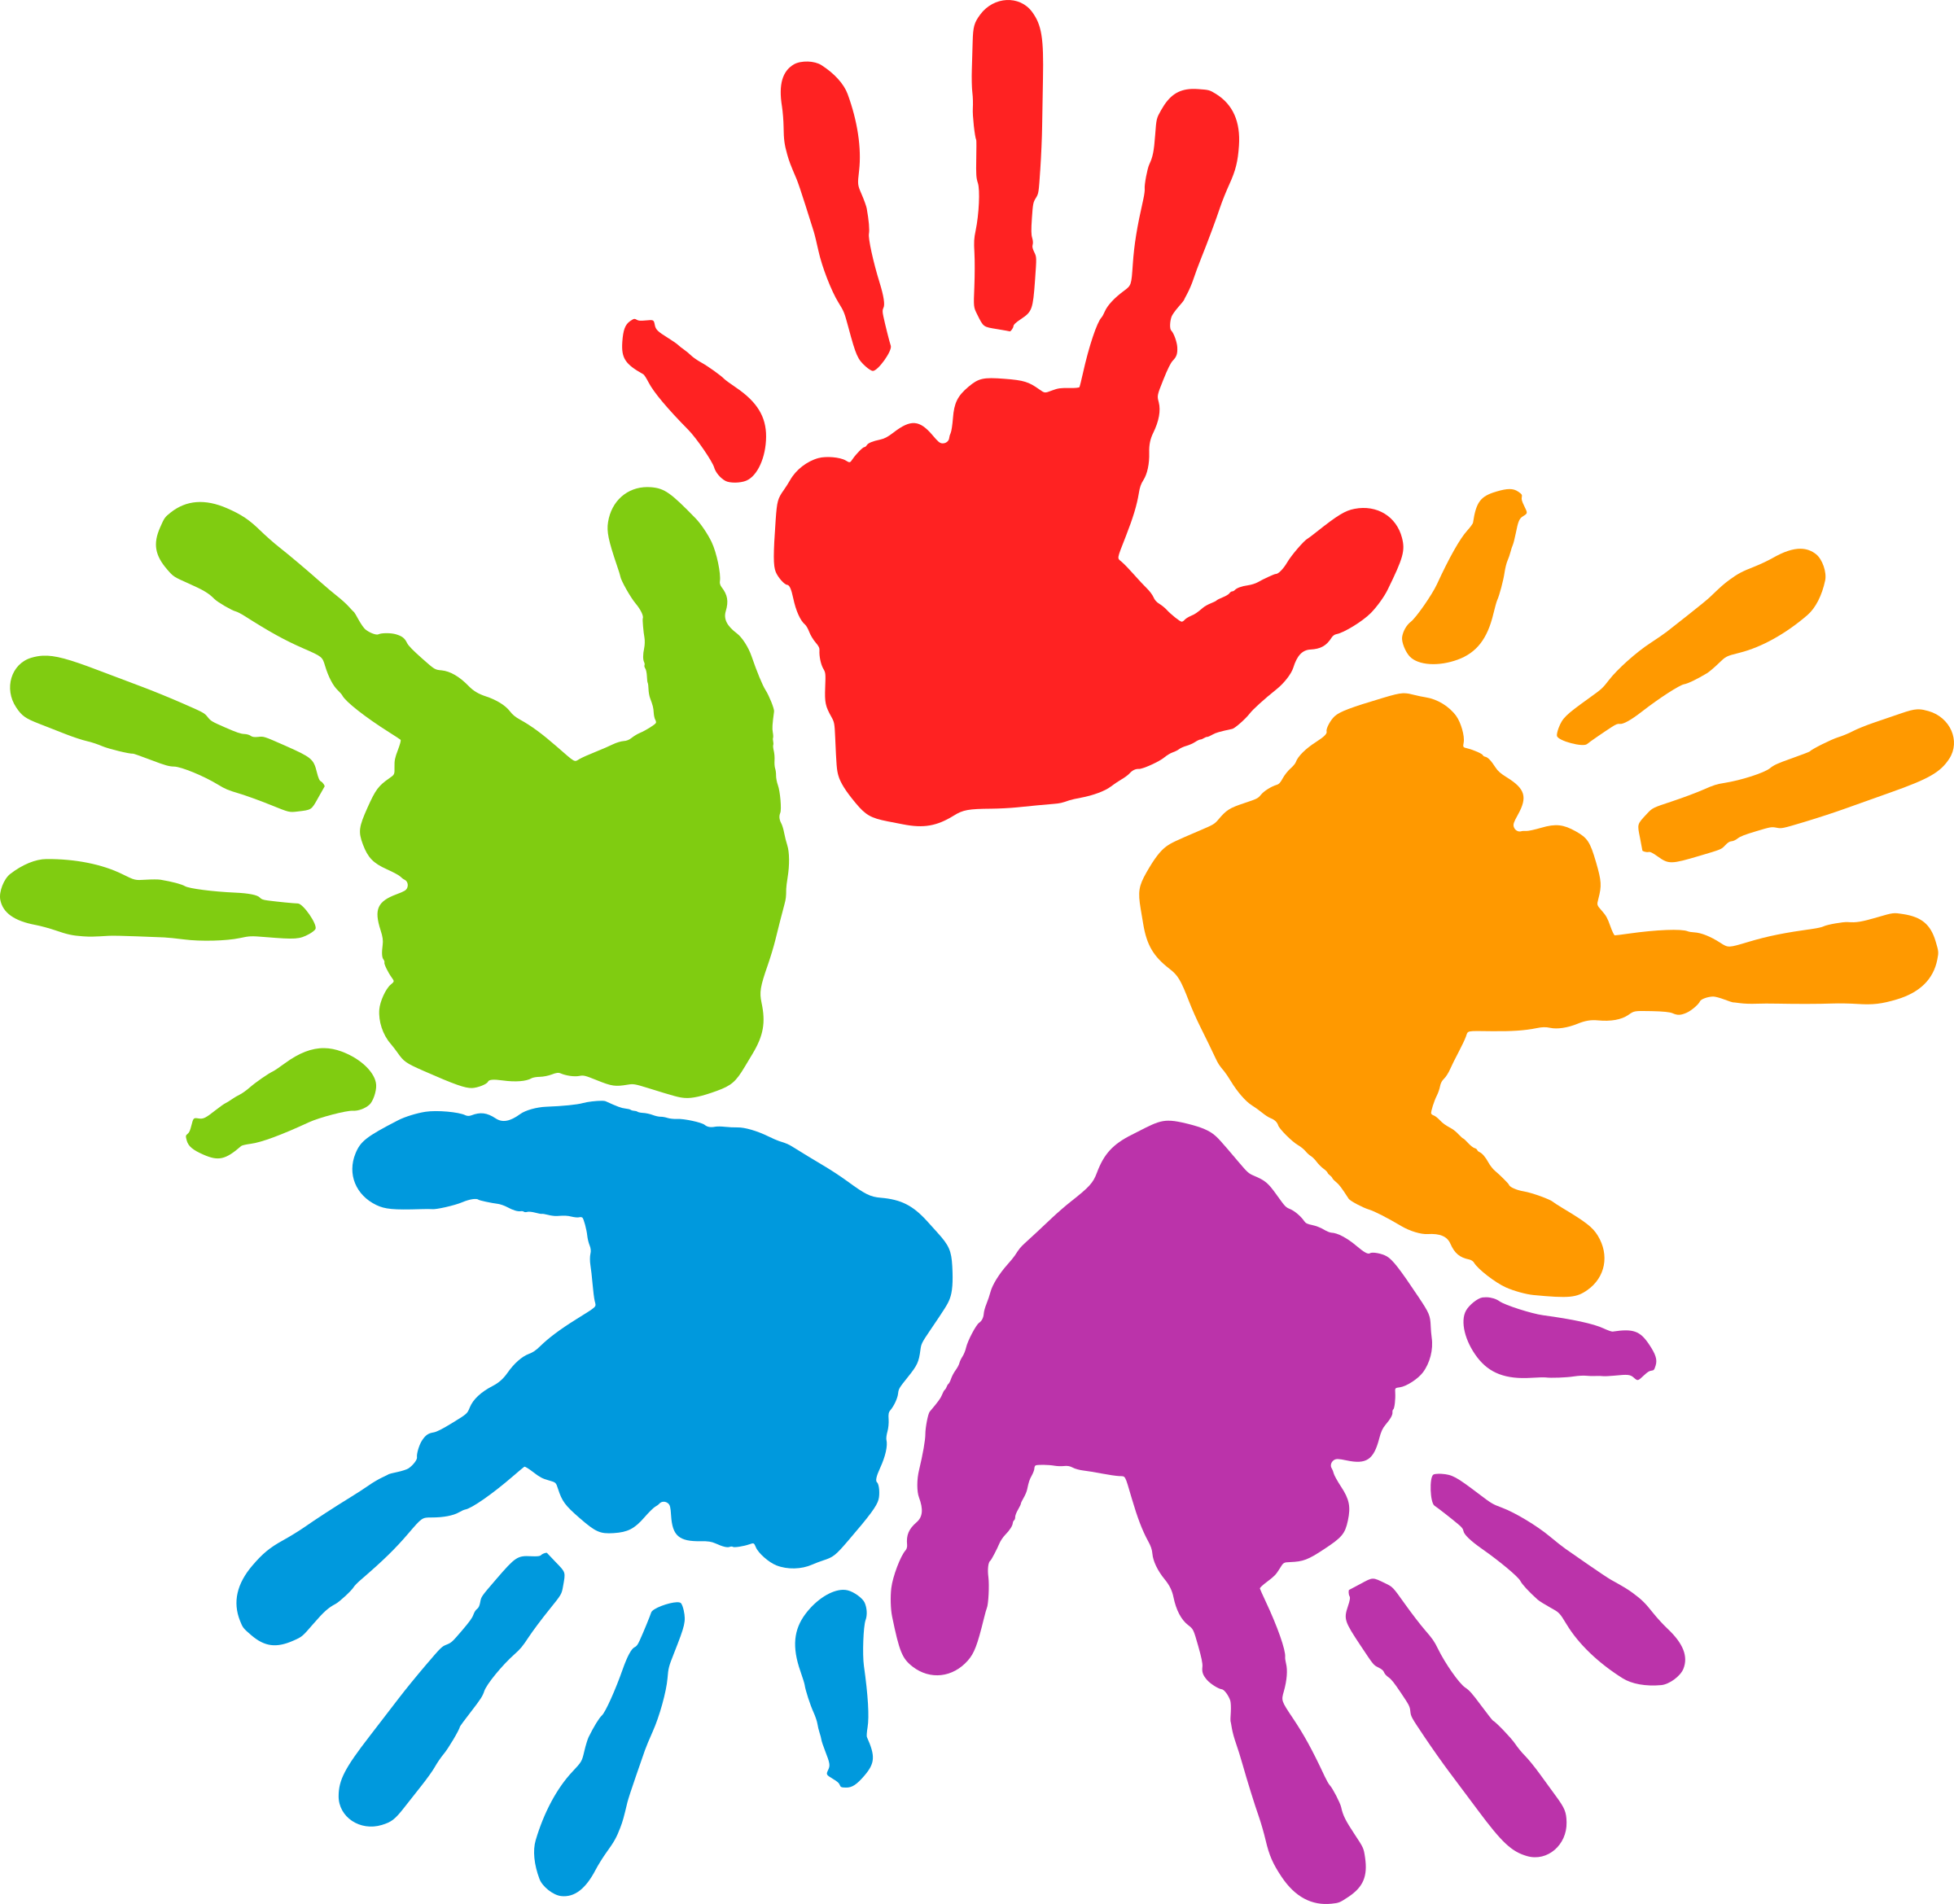 finger-paint-hands-png